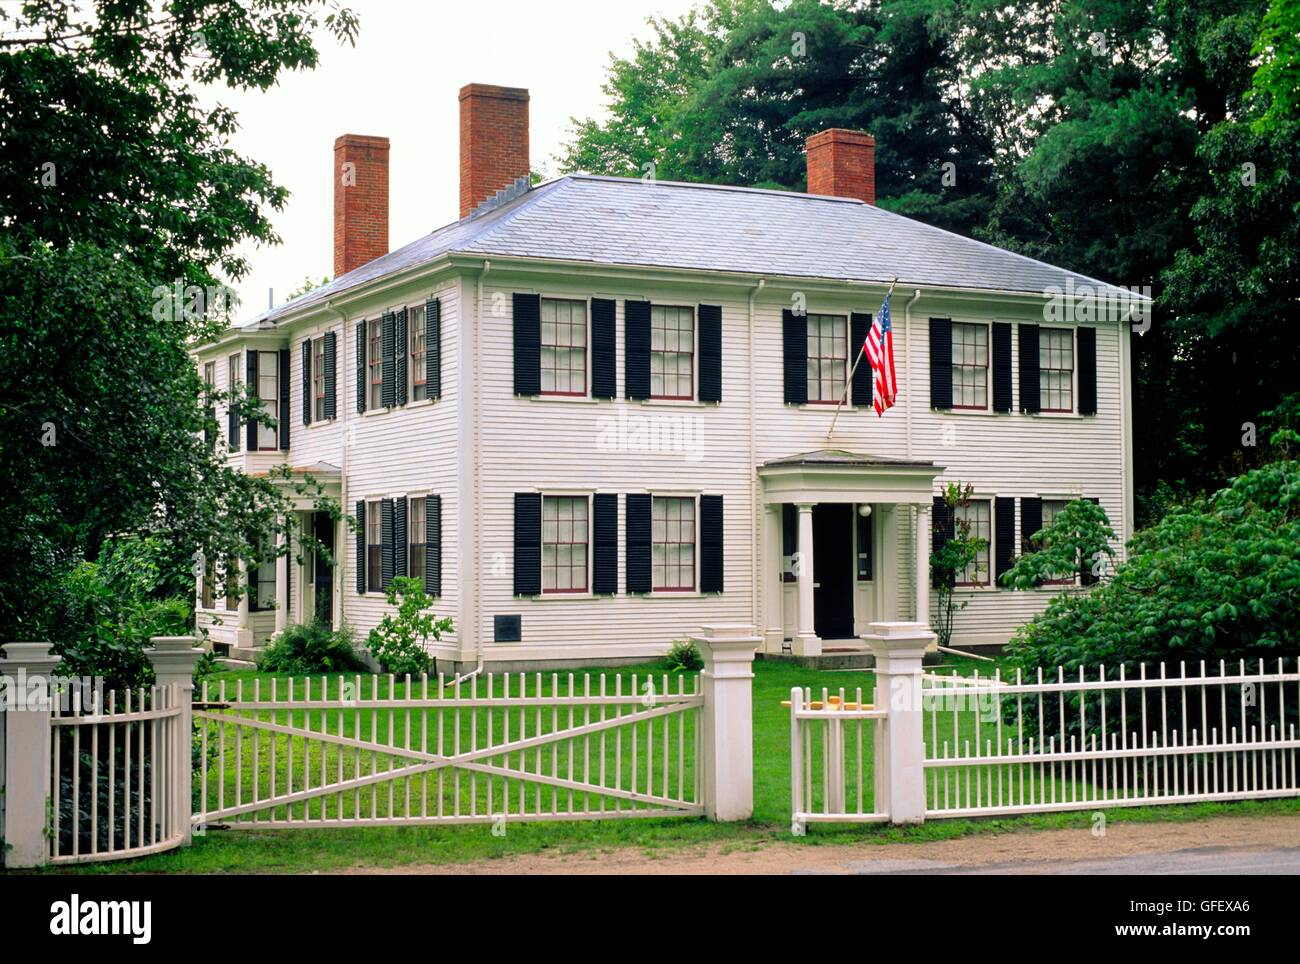 House once home of writer Ralph Waldo Emerson in historic village of Concord, near Boston, Massachusetts, New England, - Stock Image